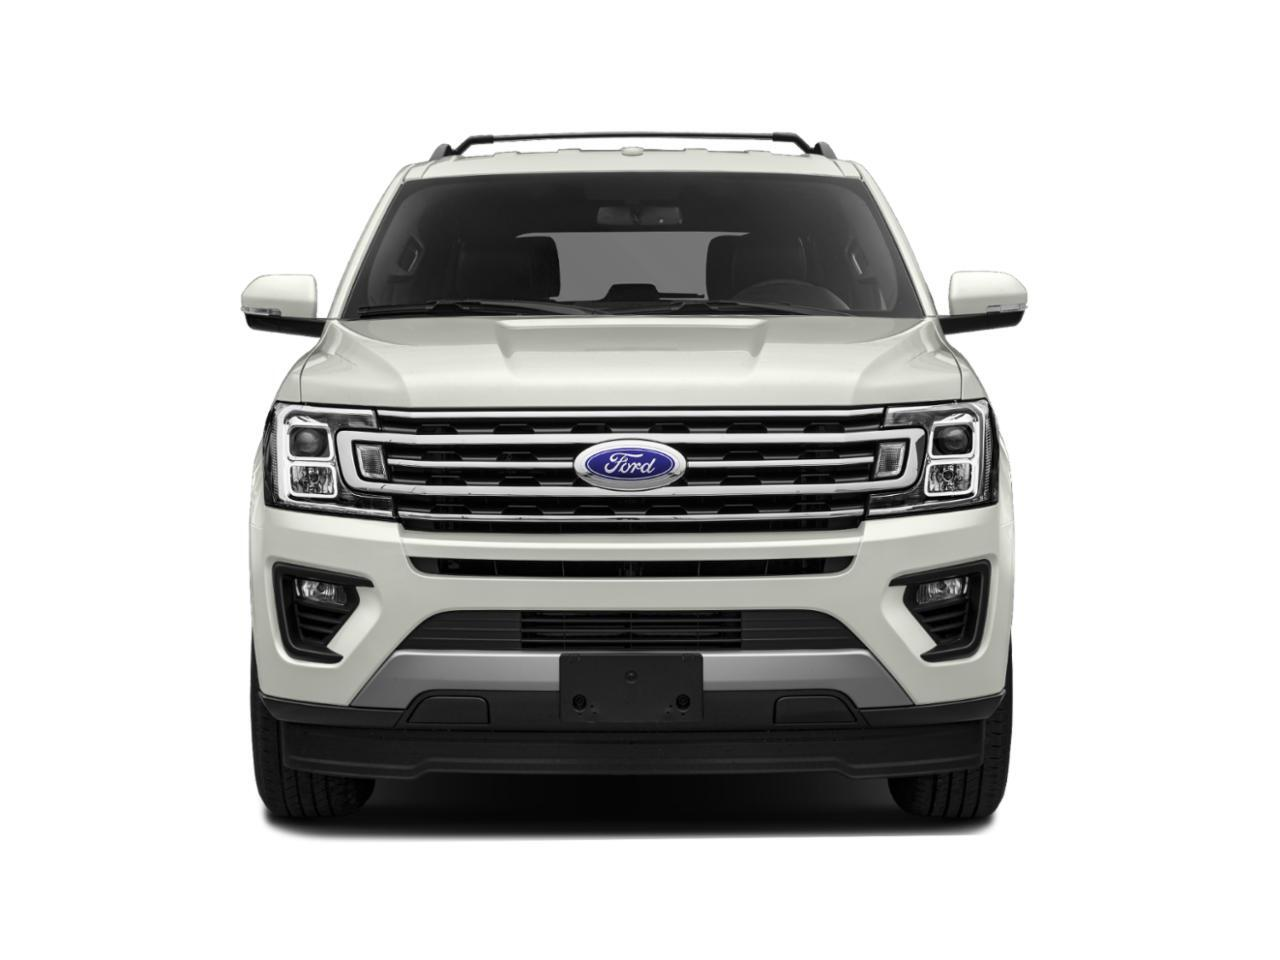 2021 Ford Expedition Platinum Max Sherwood Park AB